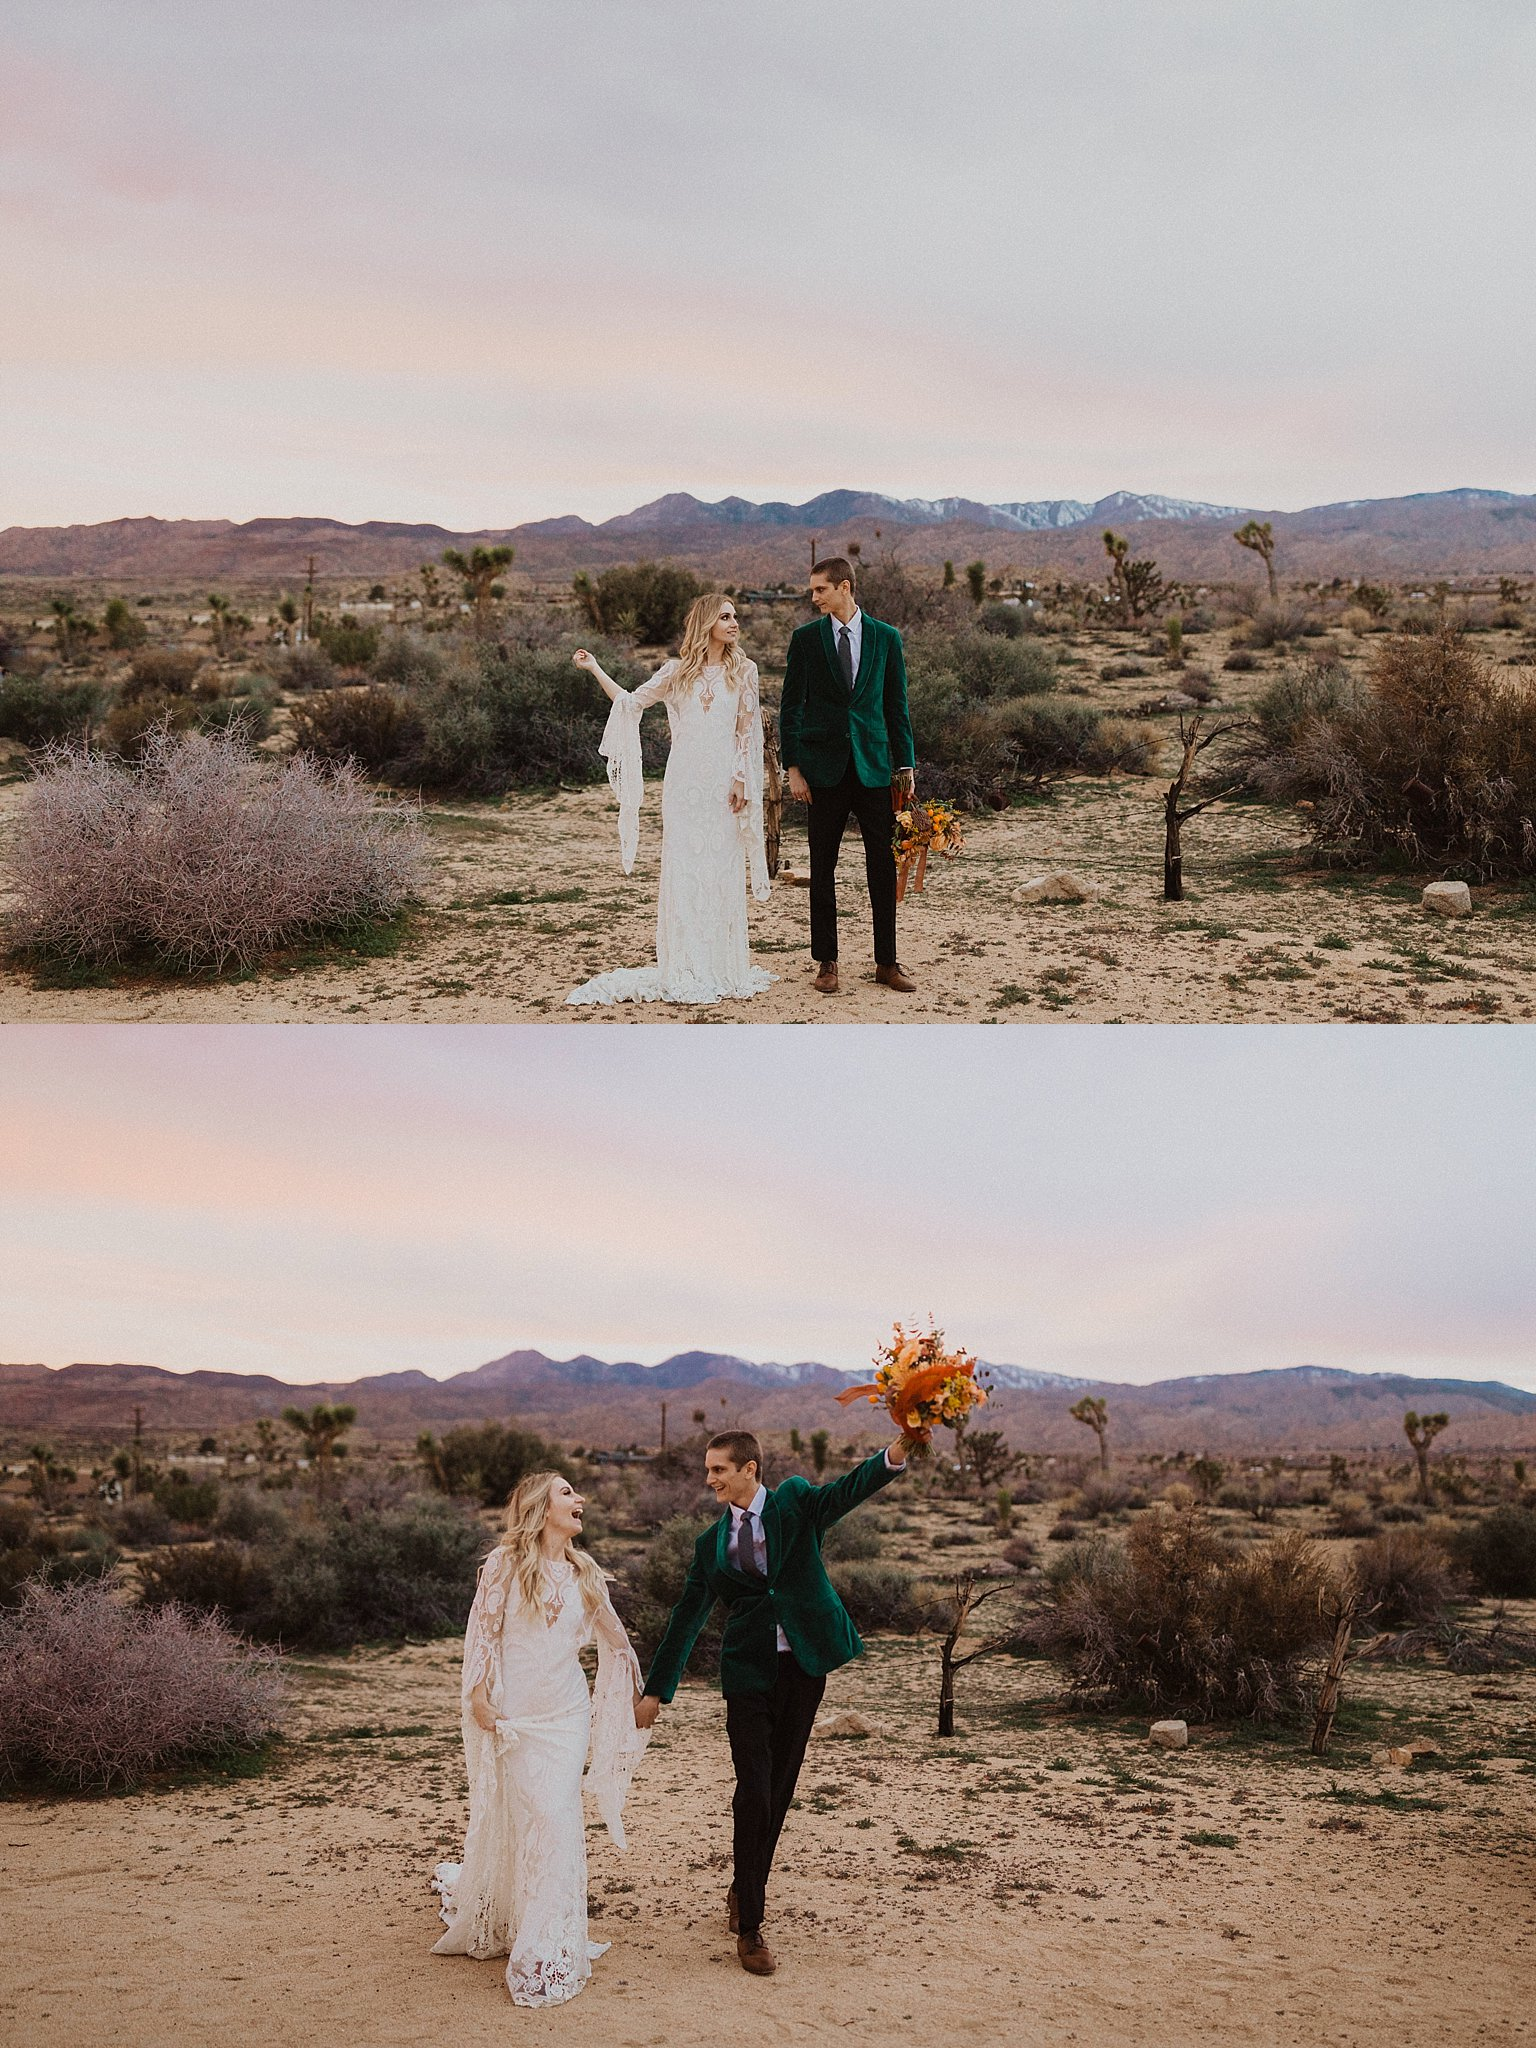 Meg's Marvels Photography - Joshua Tree Elopement California Wedding_0188.jpg